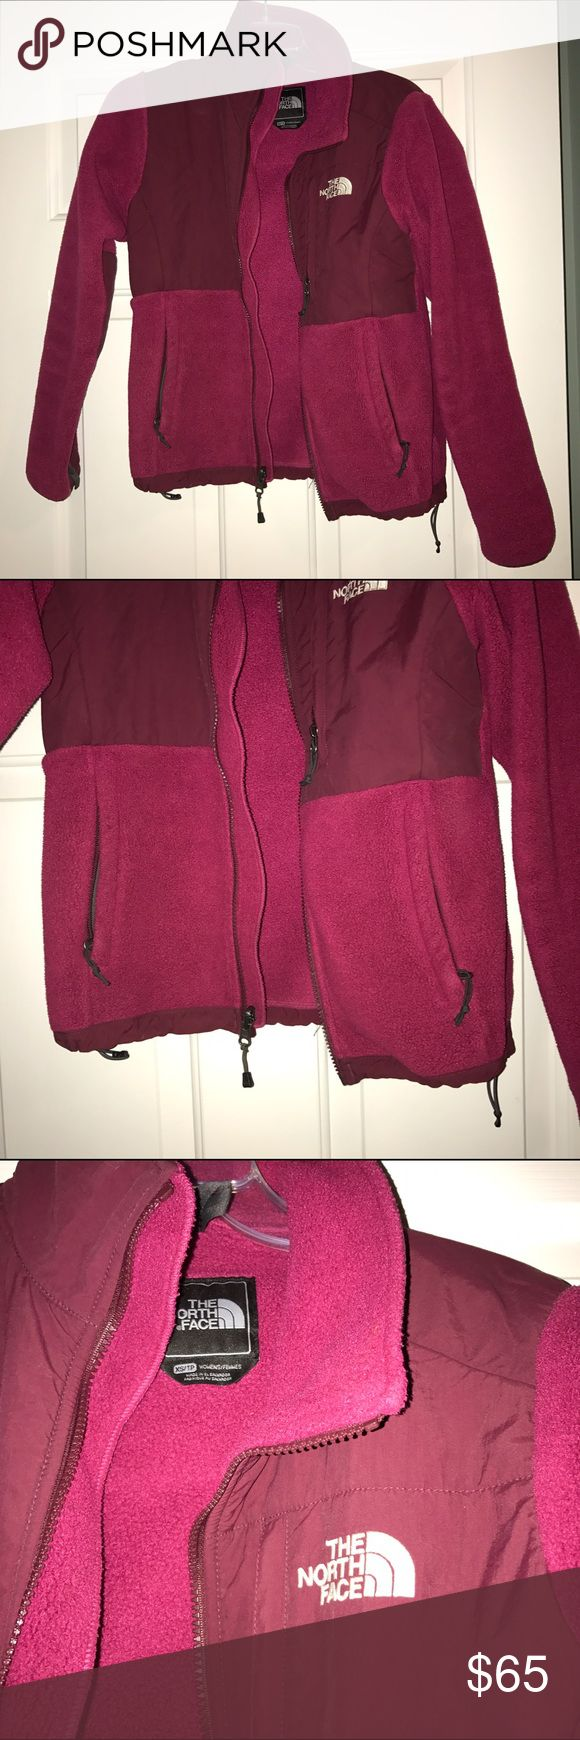 north face fleece women's north face pink zip-up fleece jacket- LOOKS BRAND NEW - size xs - lots of pockets & warm for the winter!! The North Face Jackets & Coats